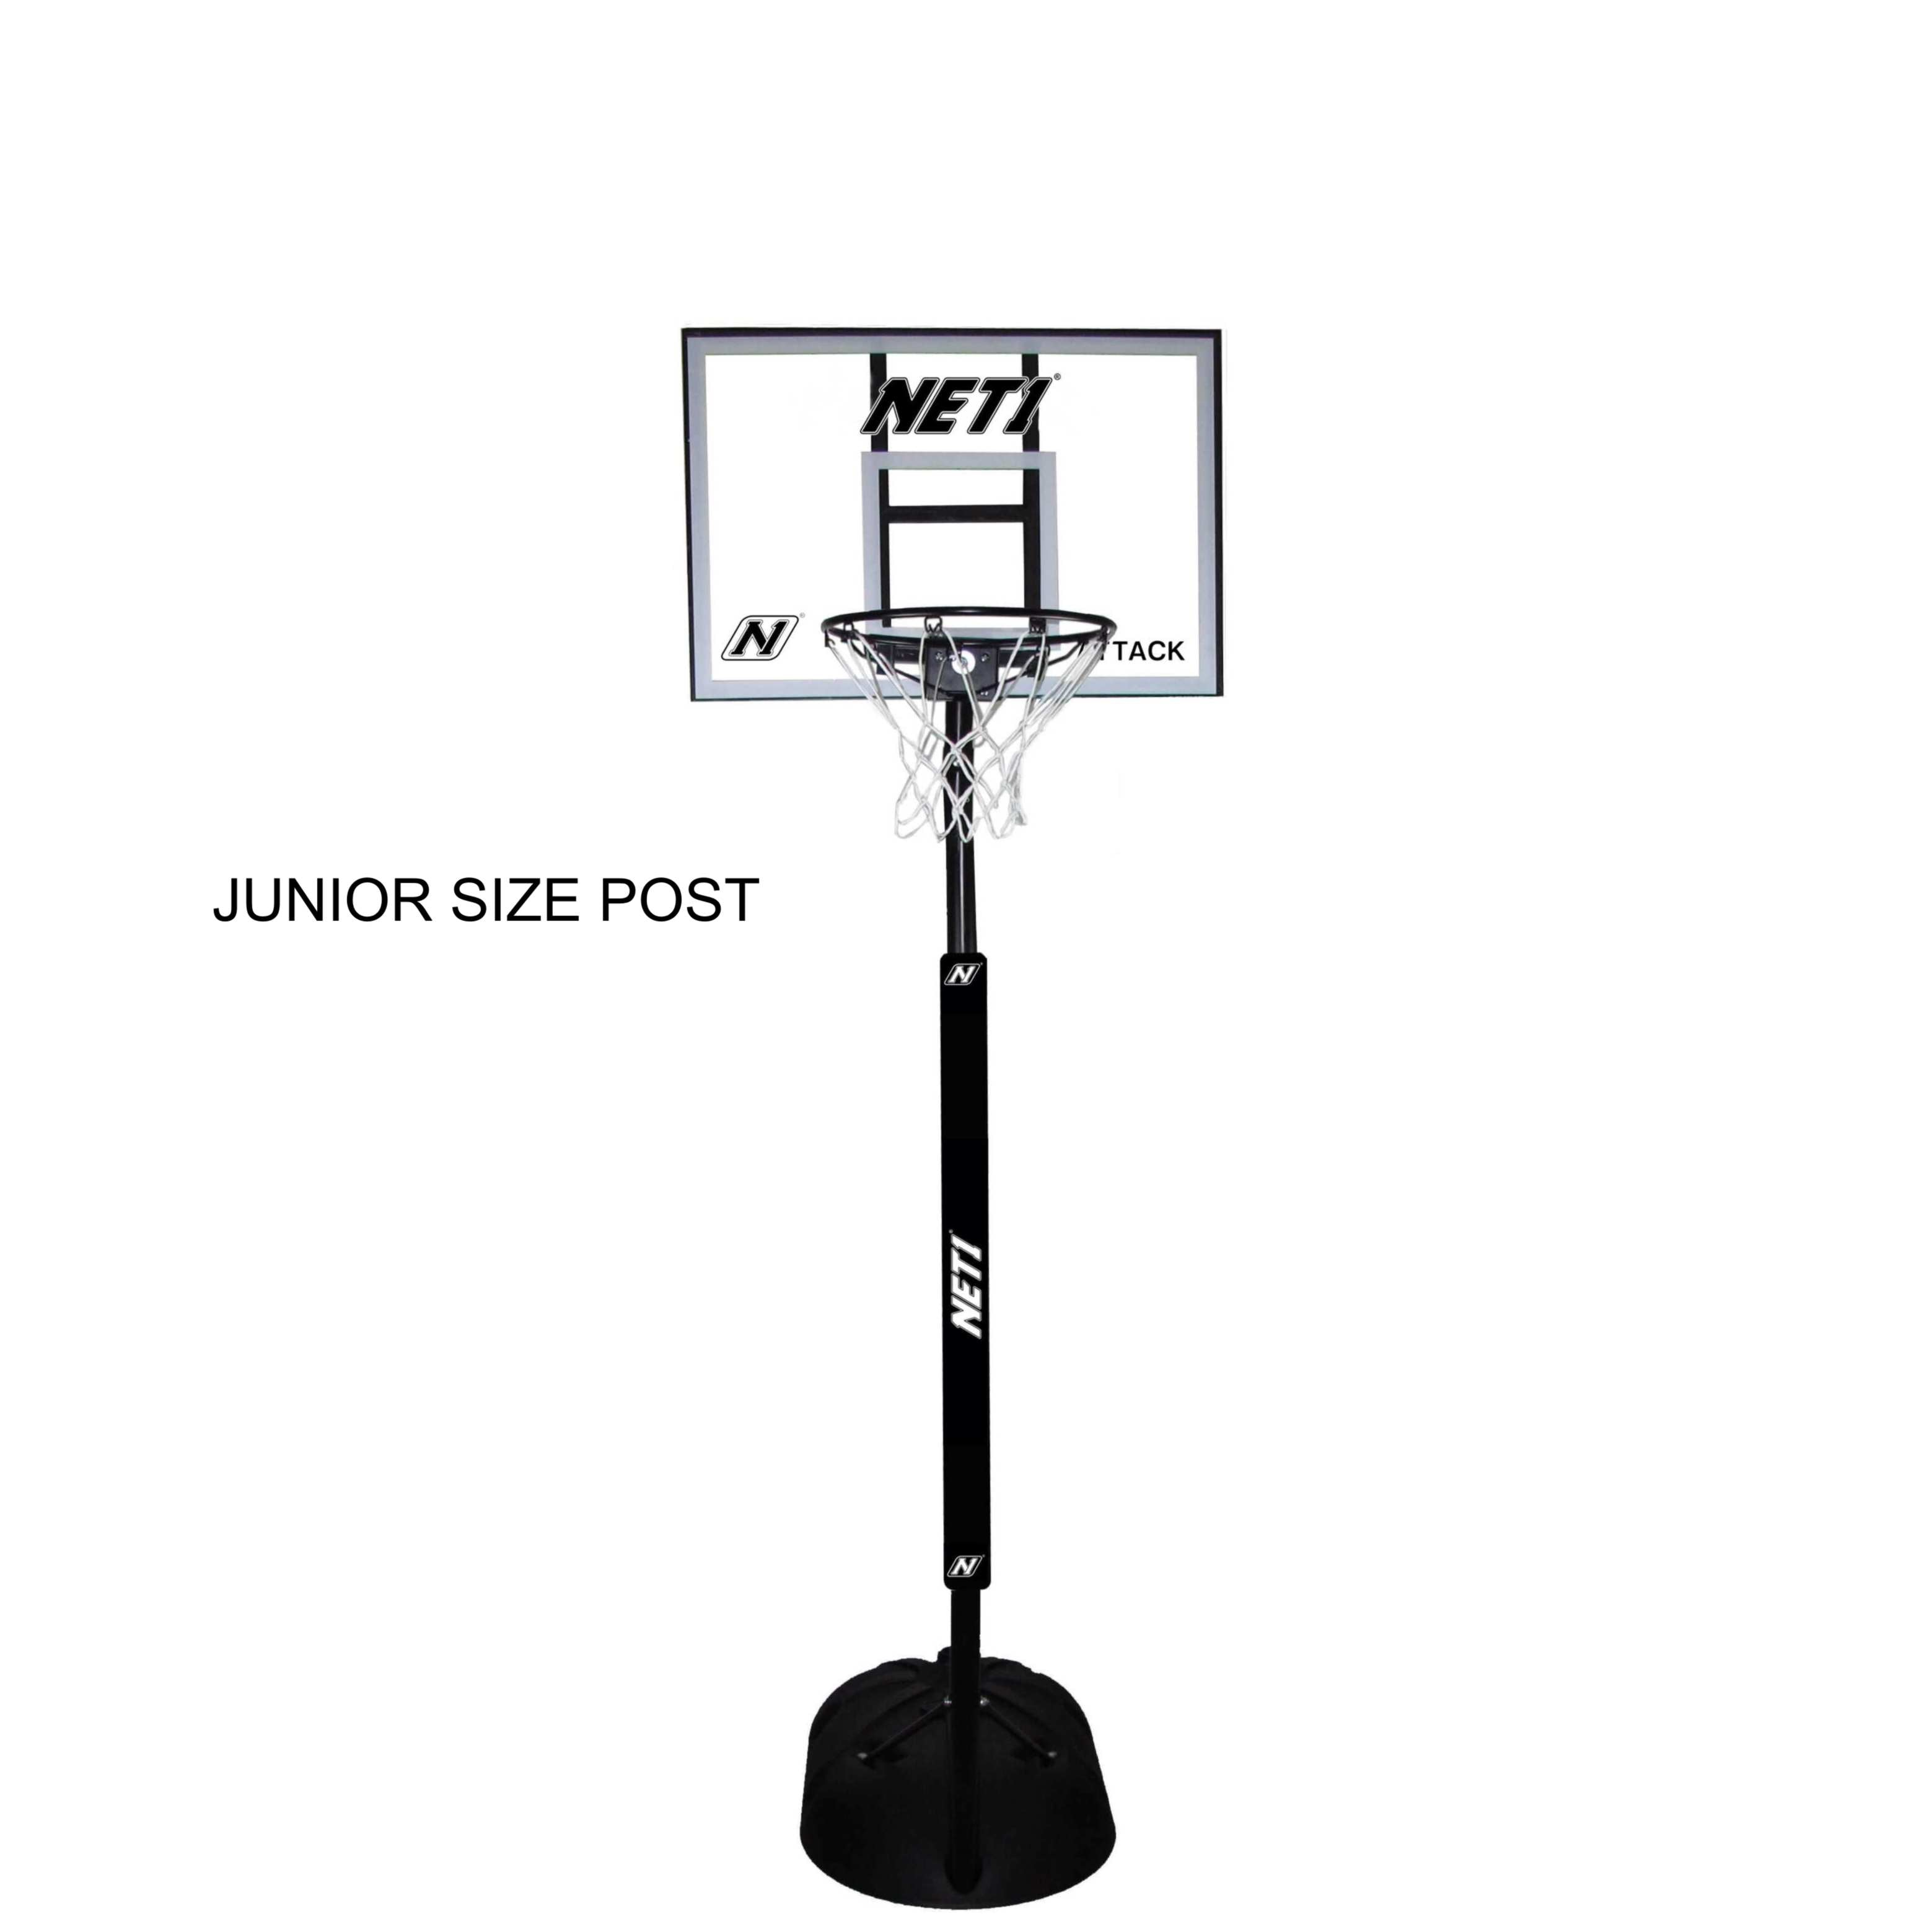 NET1 Junior Attack Portable Basketball System N1-N123206